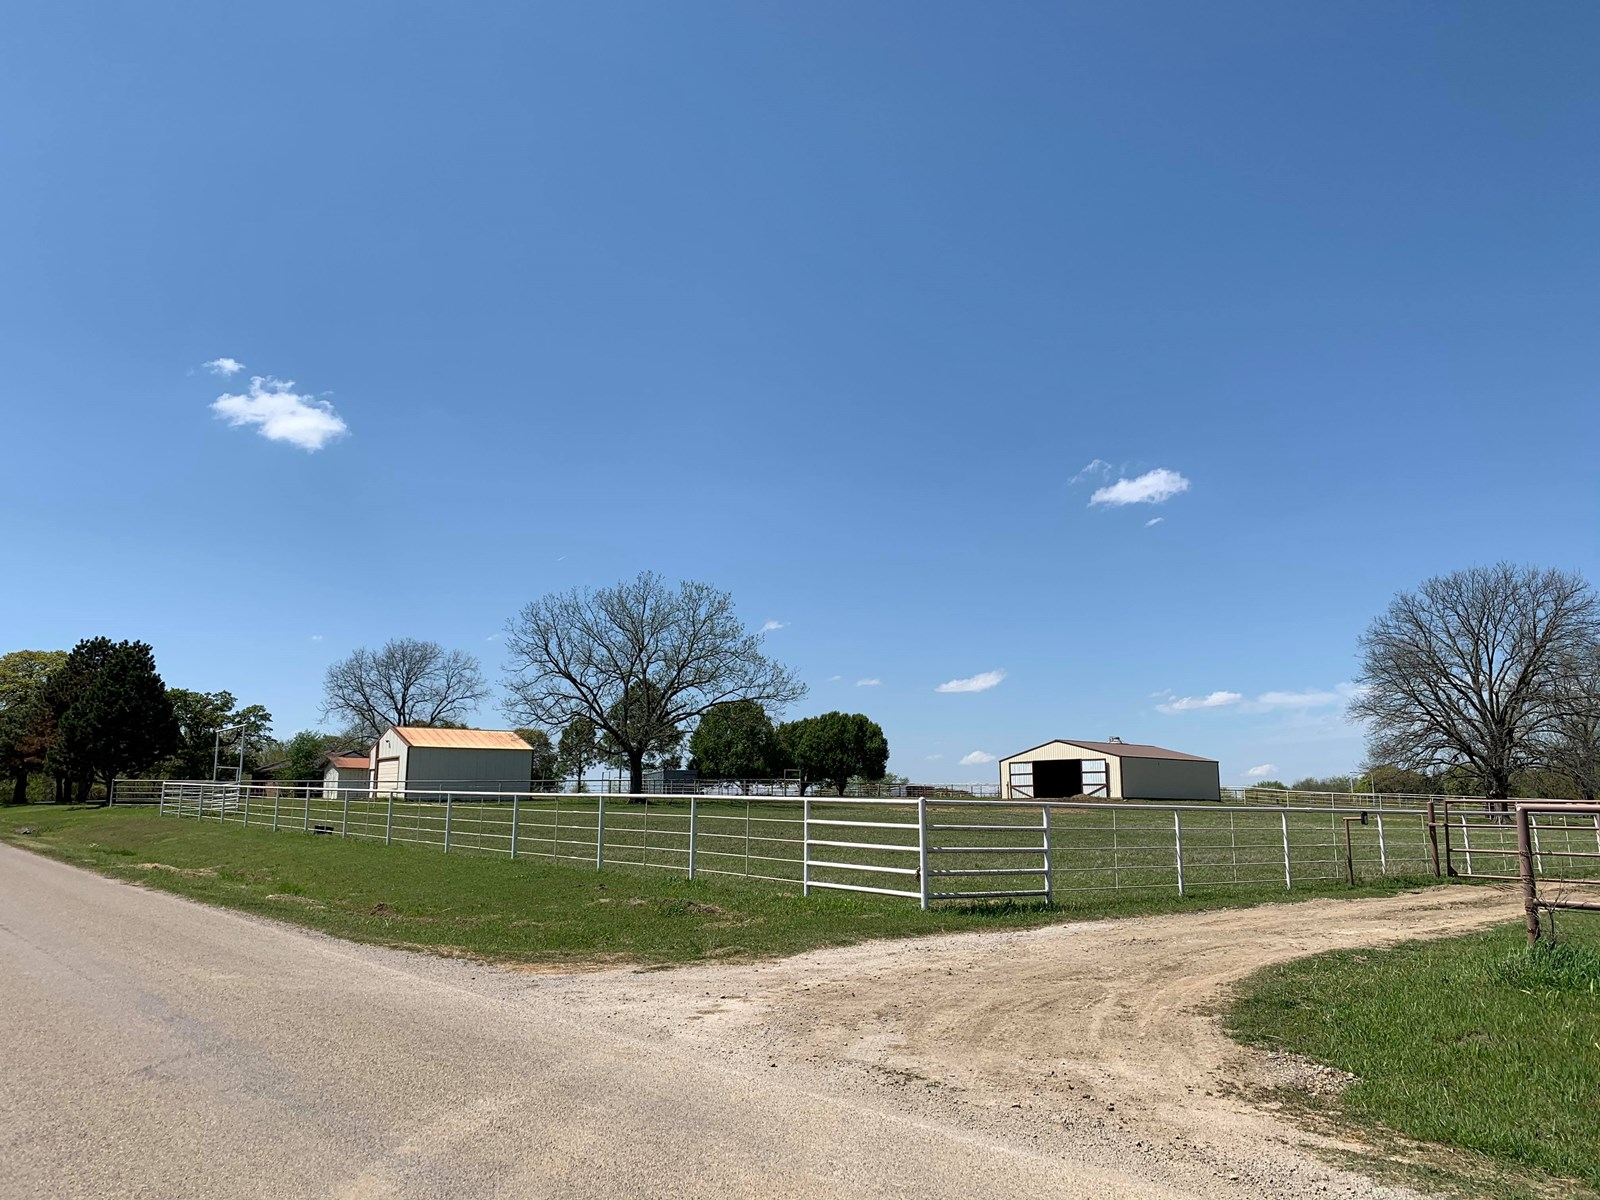 3 Beds 2 Baths Country Home on 5acres for sale in Pawnee OK